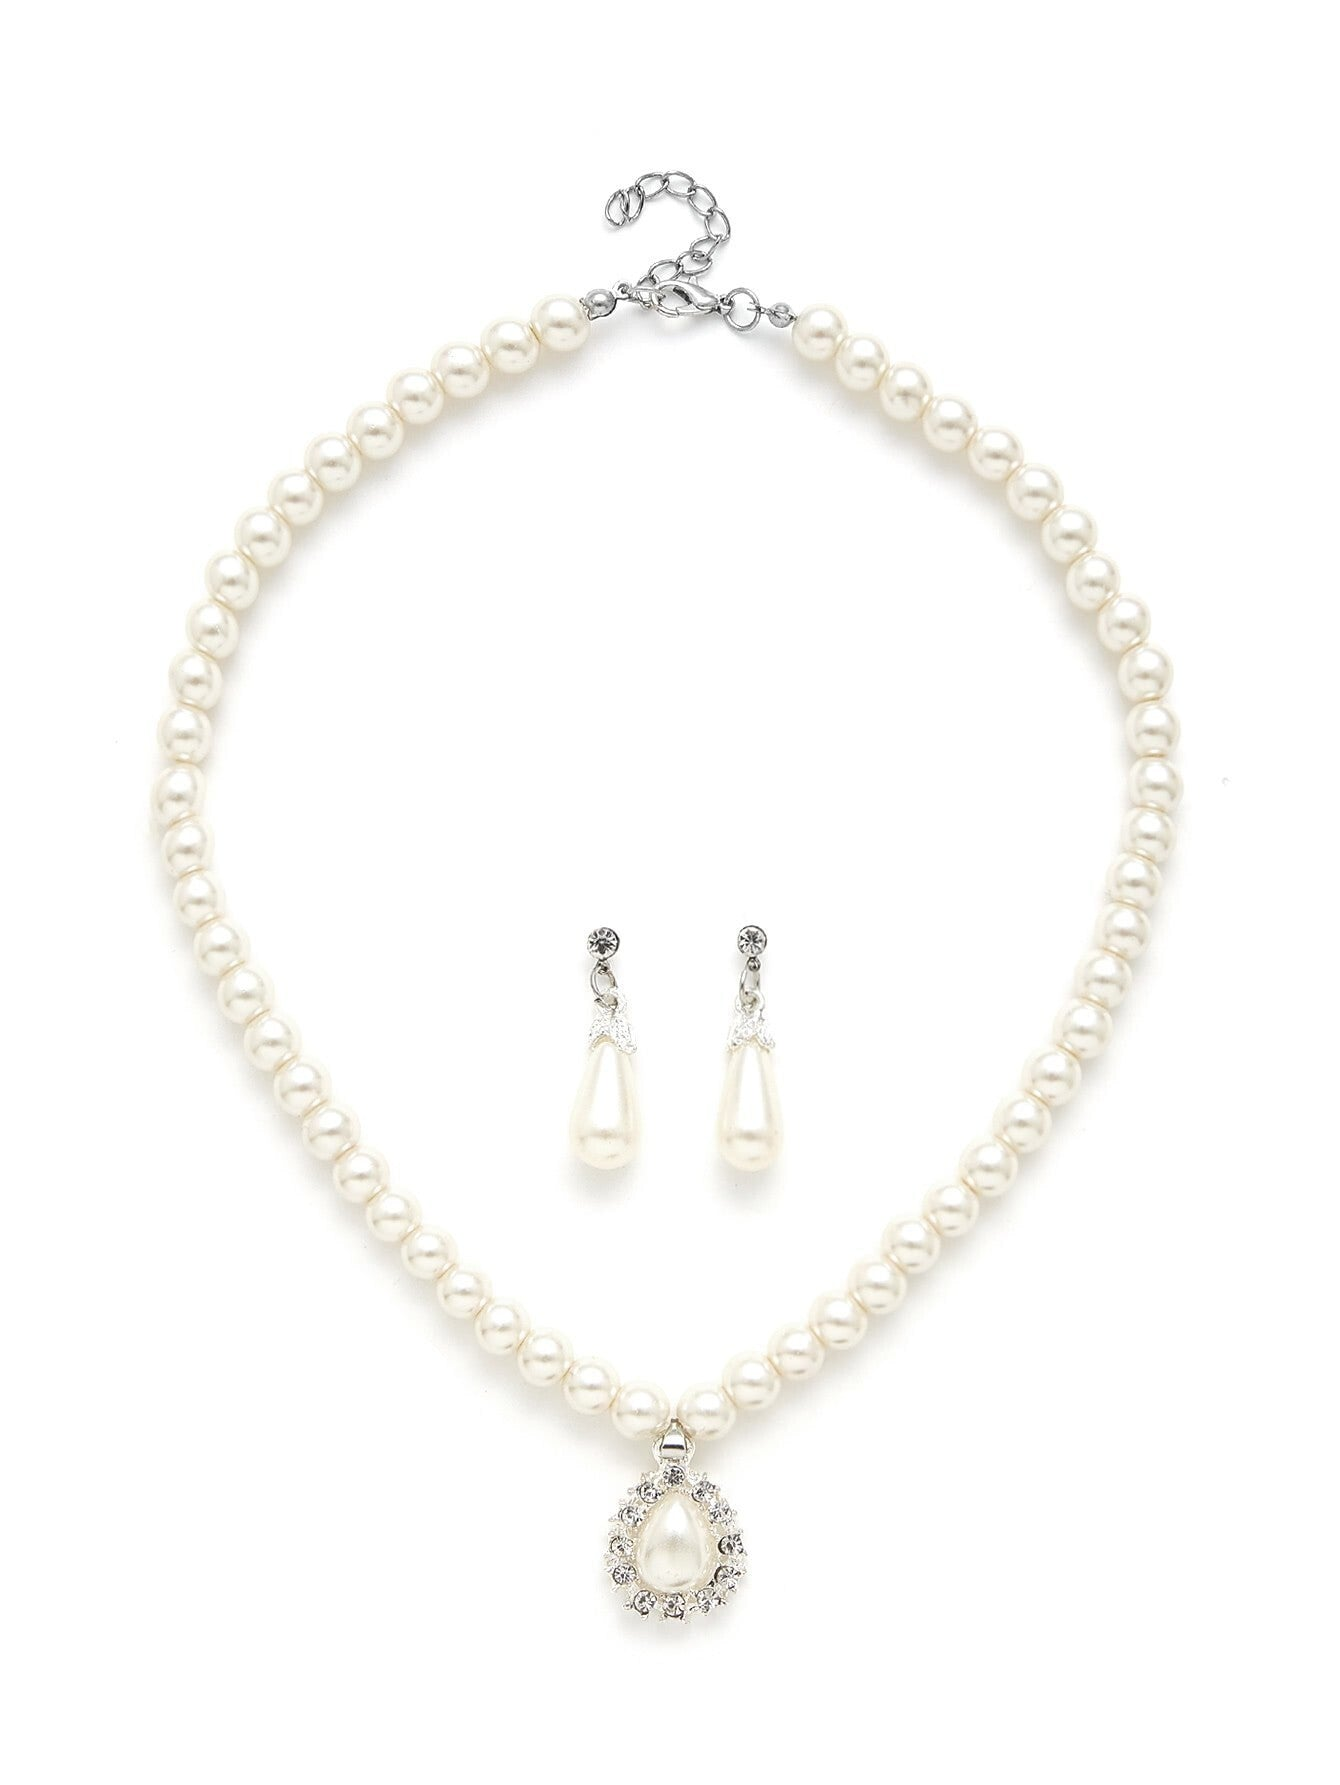 White Faux Pearl Water Drop Design Necklace & Earring Set